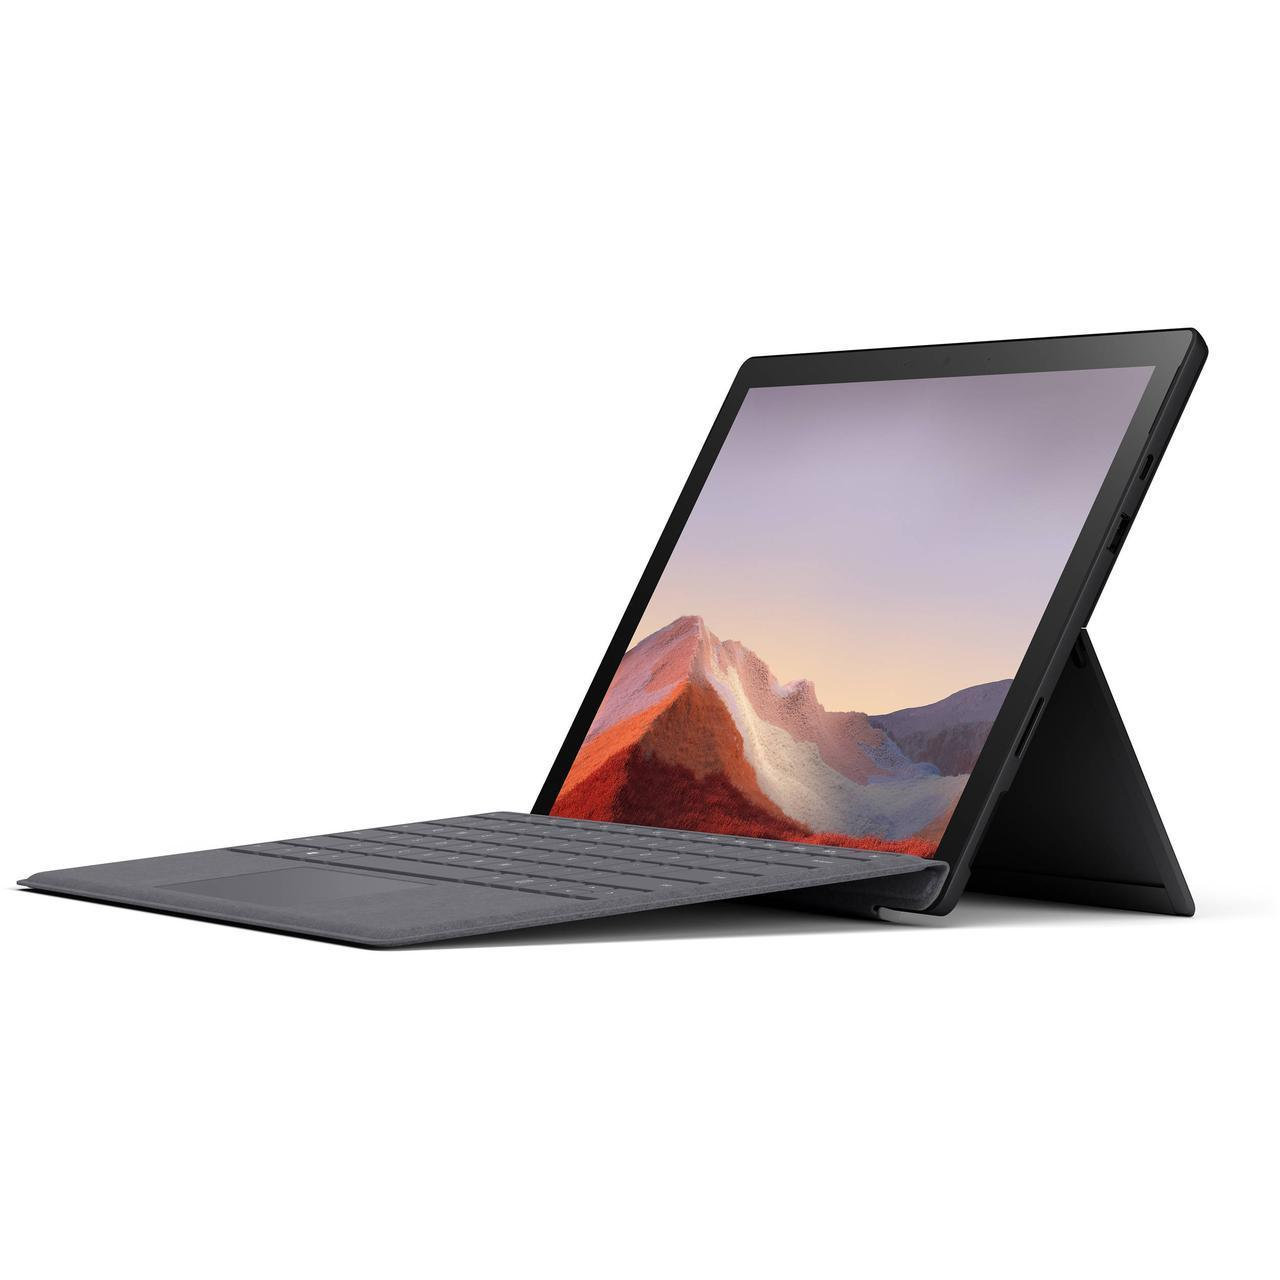 Surface Pro 7 Black, Intel Core i7, 16GB, 256GB